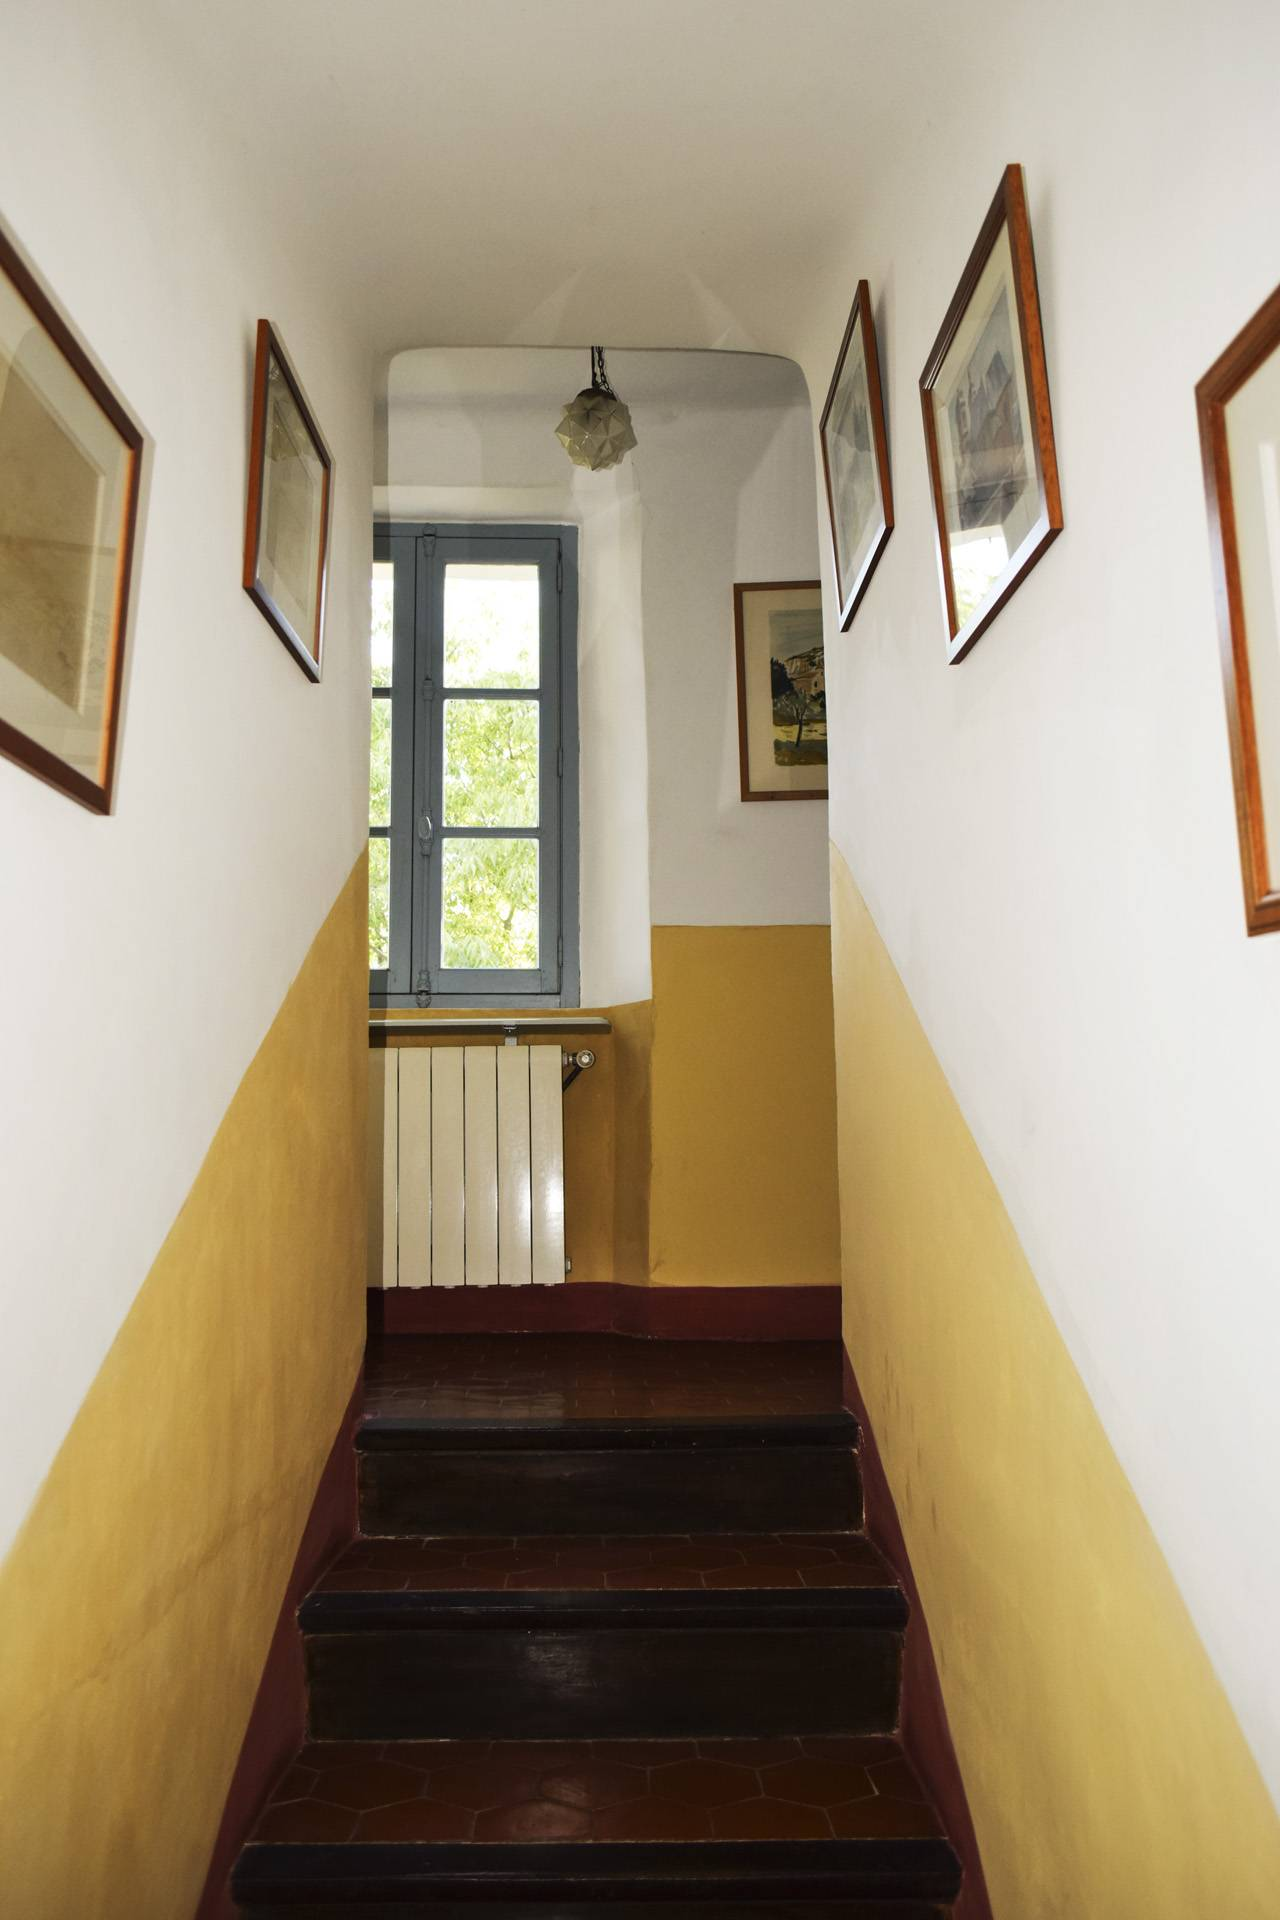 bedroom corridor renovated country house on 8 ha, swimming pool, caretaker's house, aups var, provence